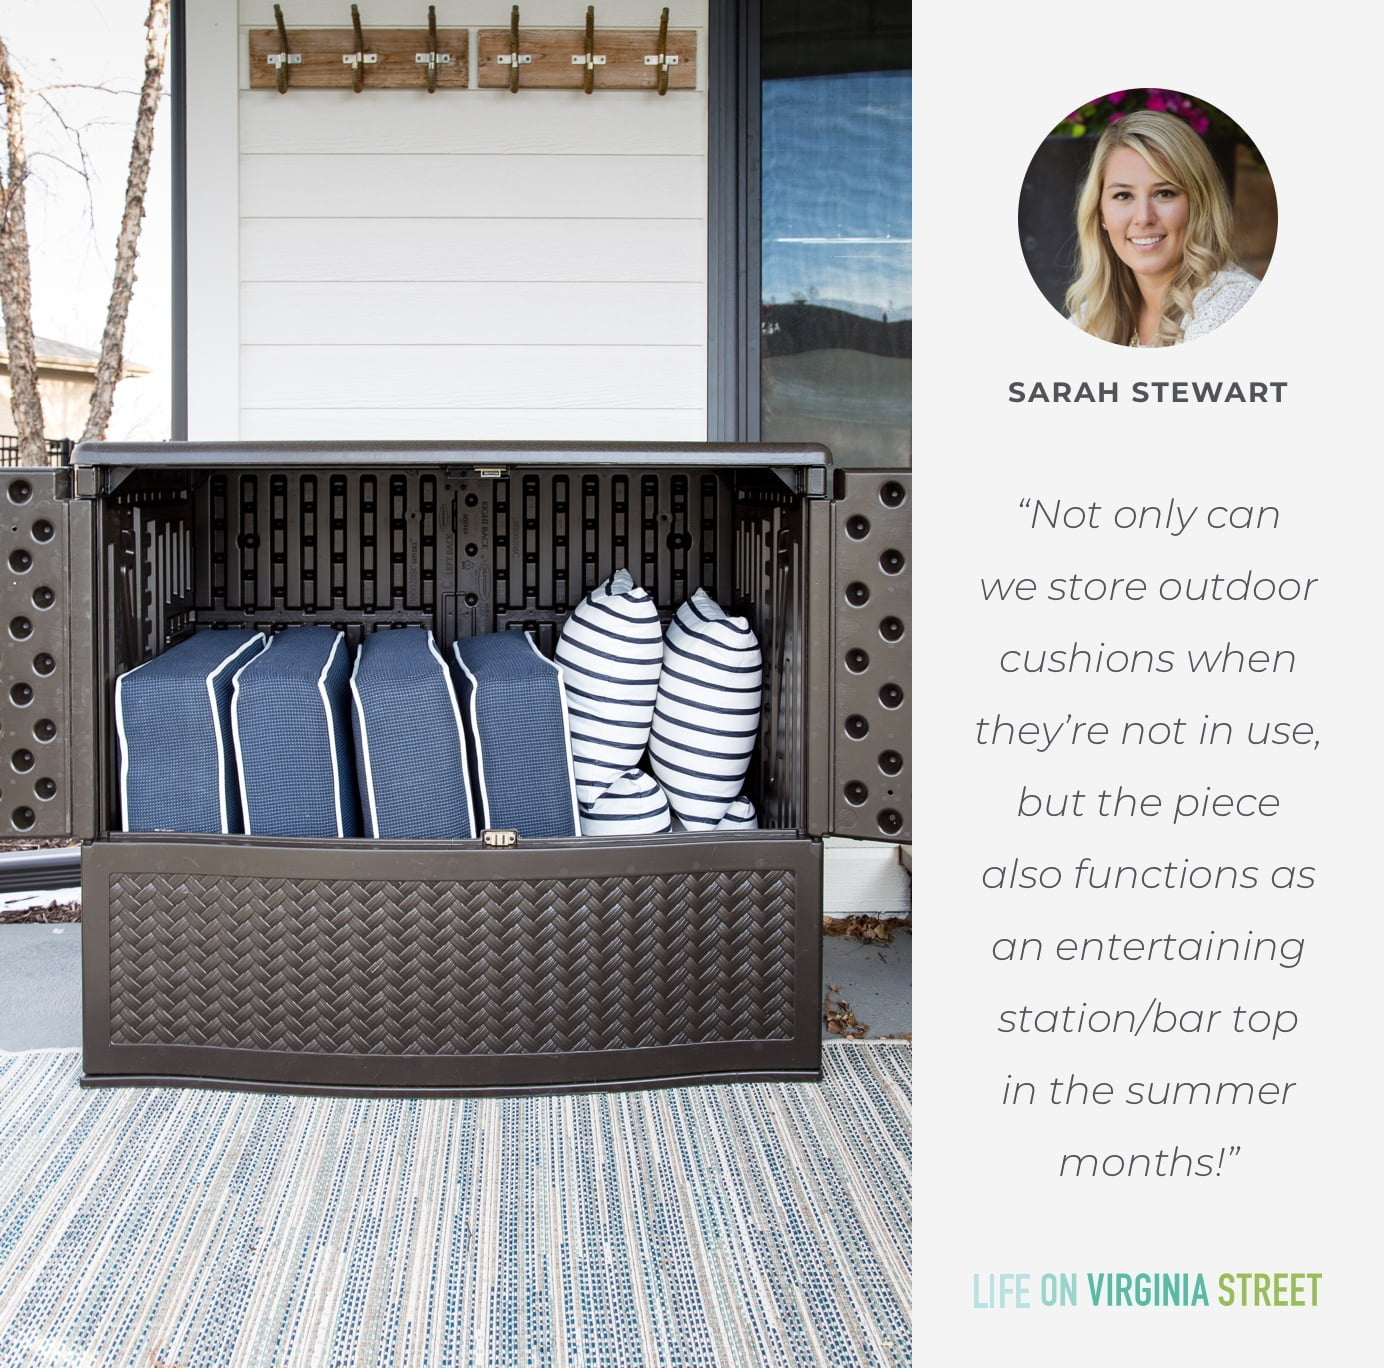 Not only can we store outdoor cushions when they're not in use, but the piece also functions as an entertaining station/bar top in the summer months!